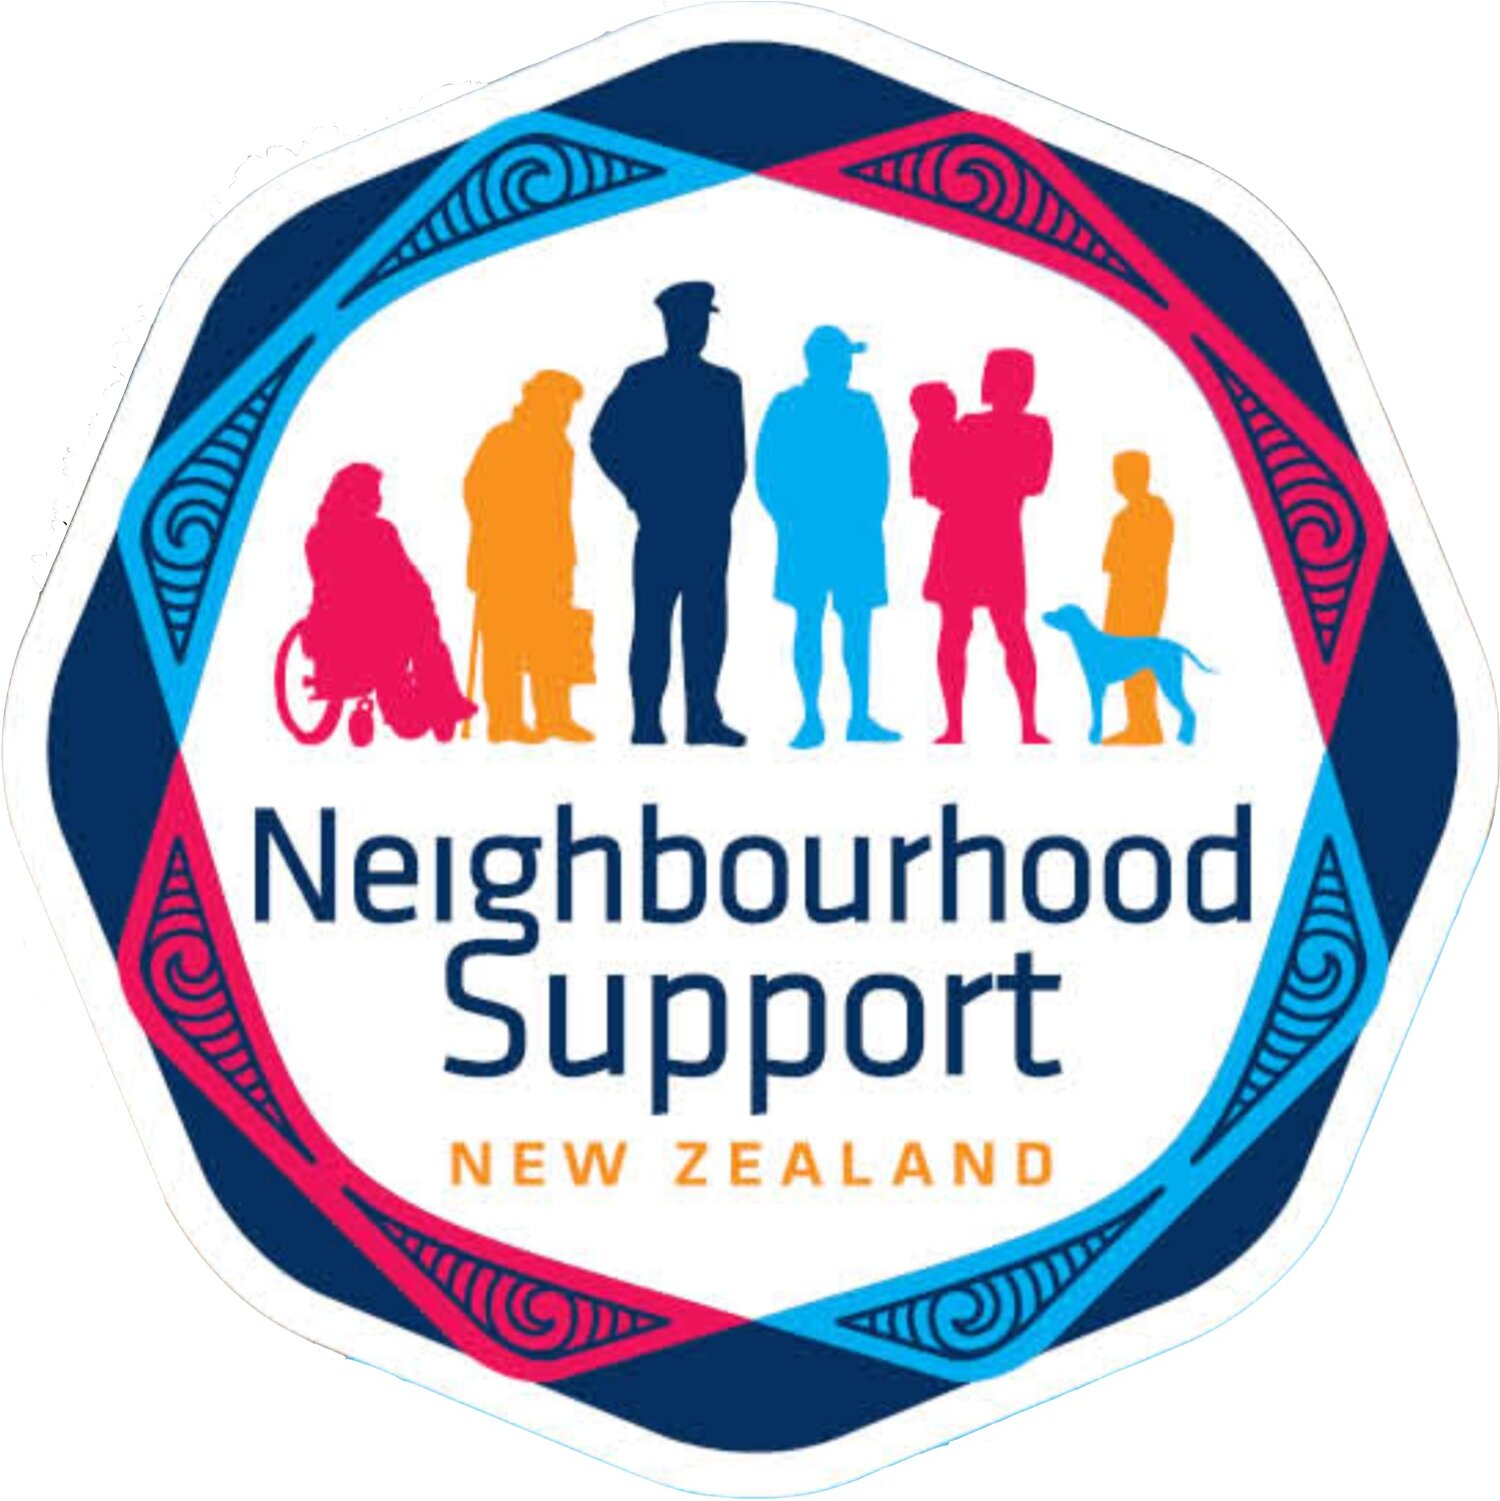 Western Bay of Plenty Neighbourhood Support